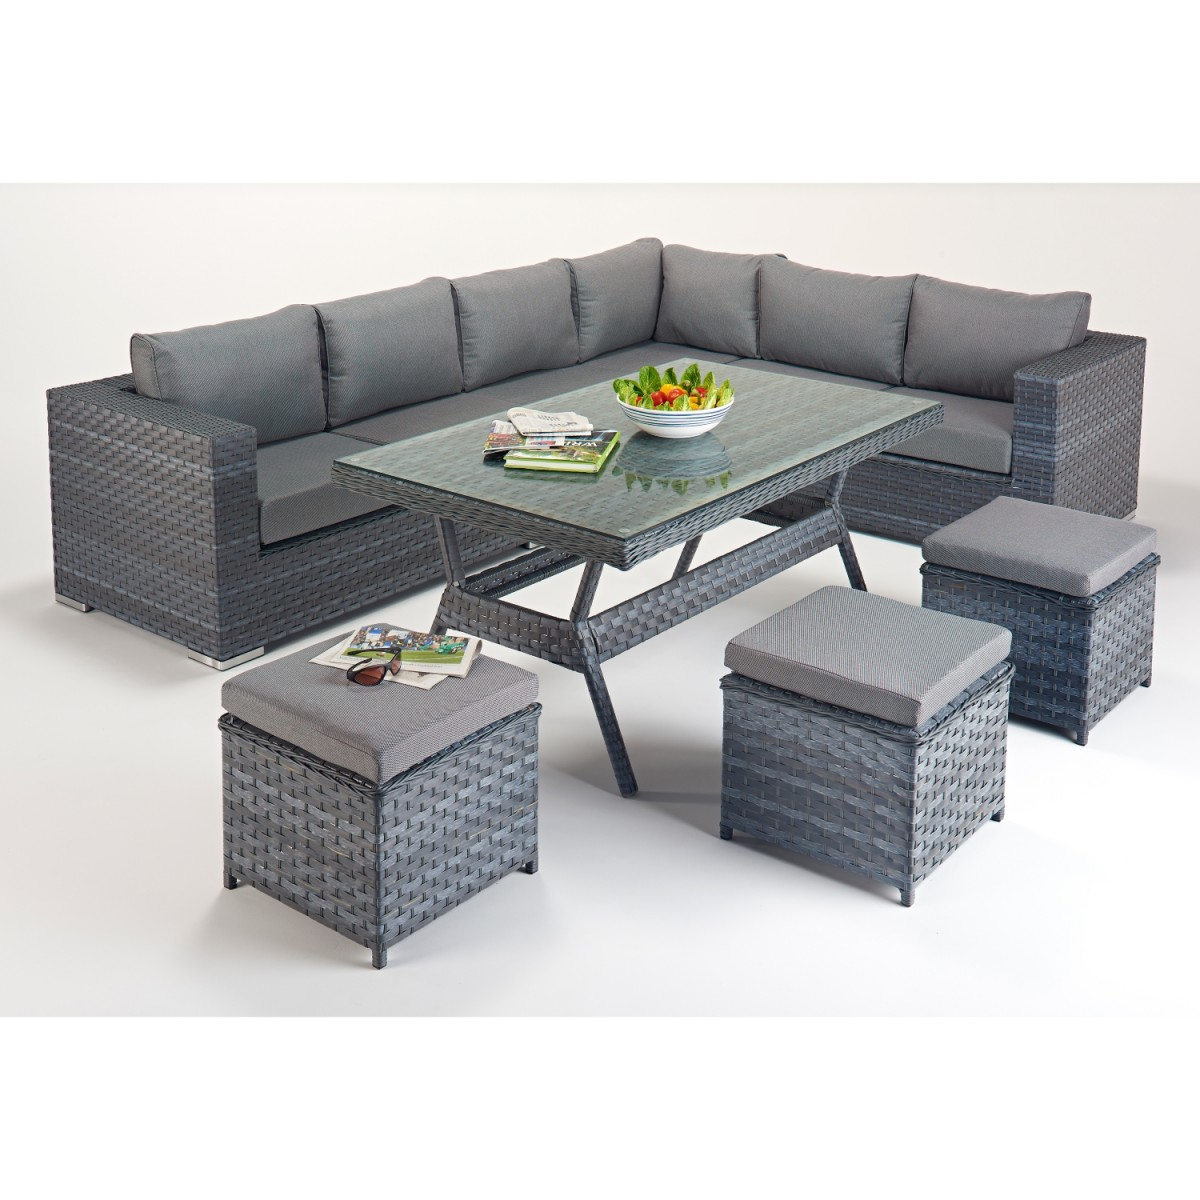 Rattan Corner Sofa Reviews Rattan Set Platinum Corner Sofa Dining Set Wgf 513 Right